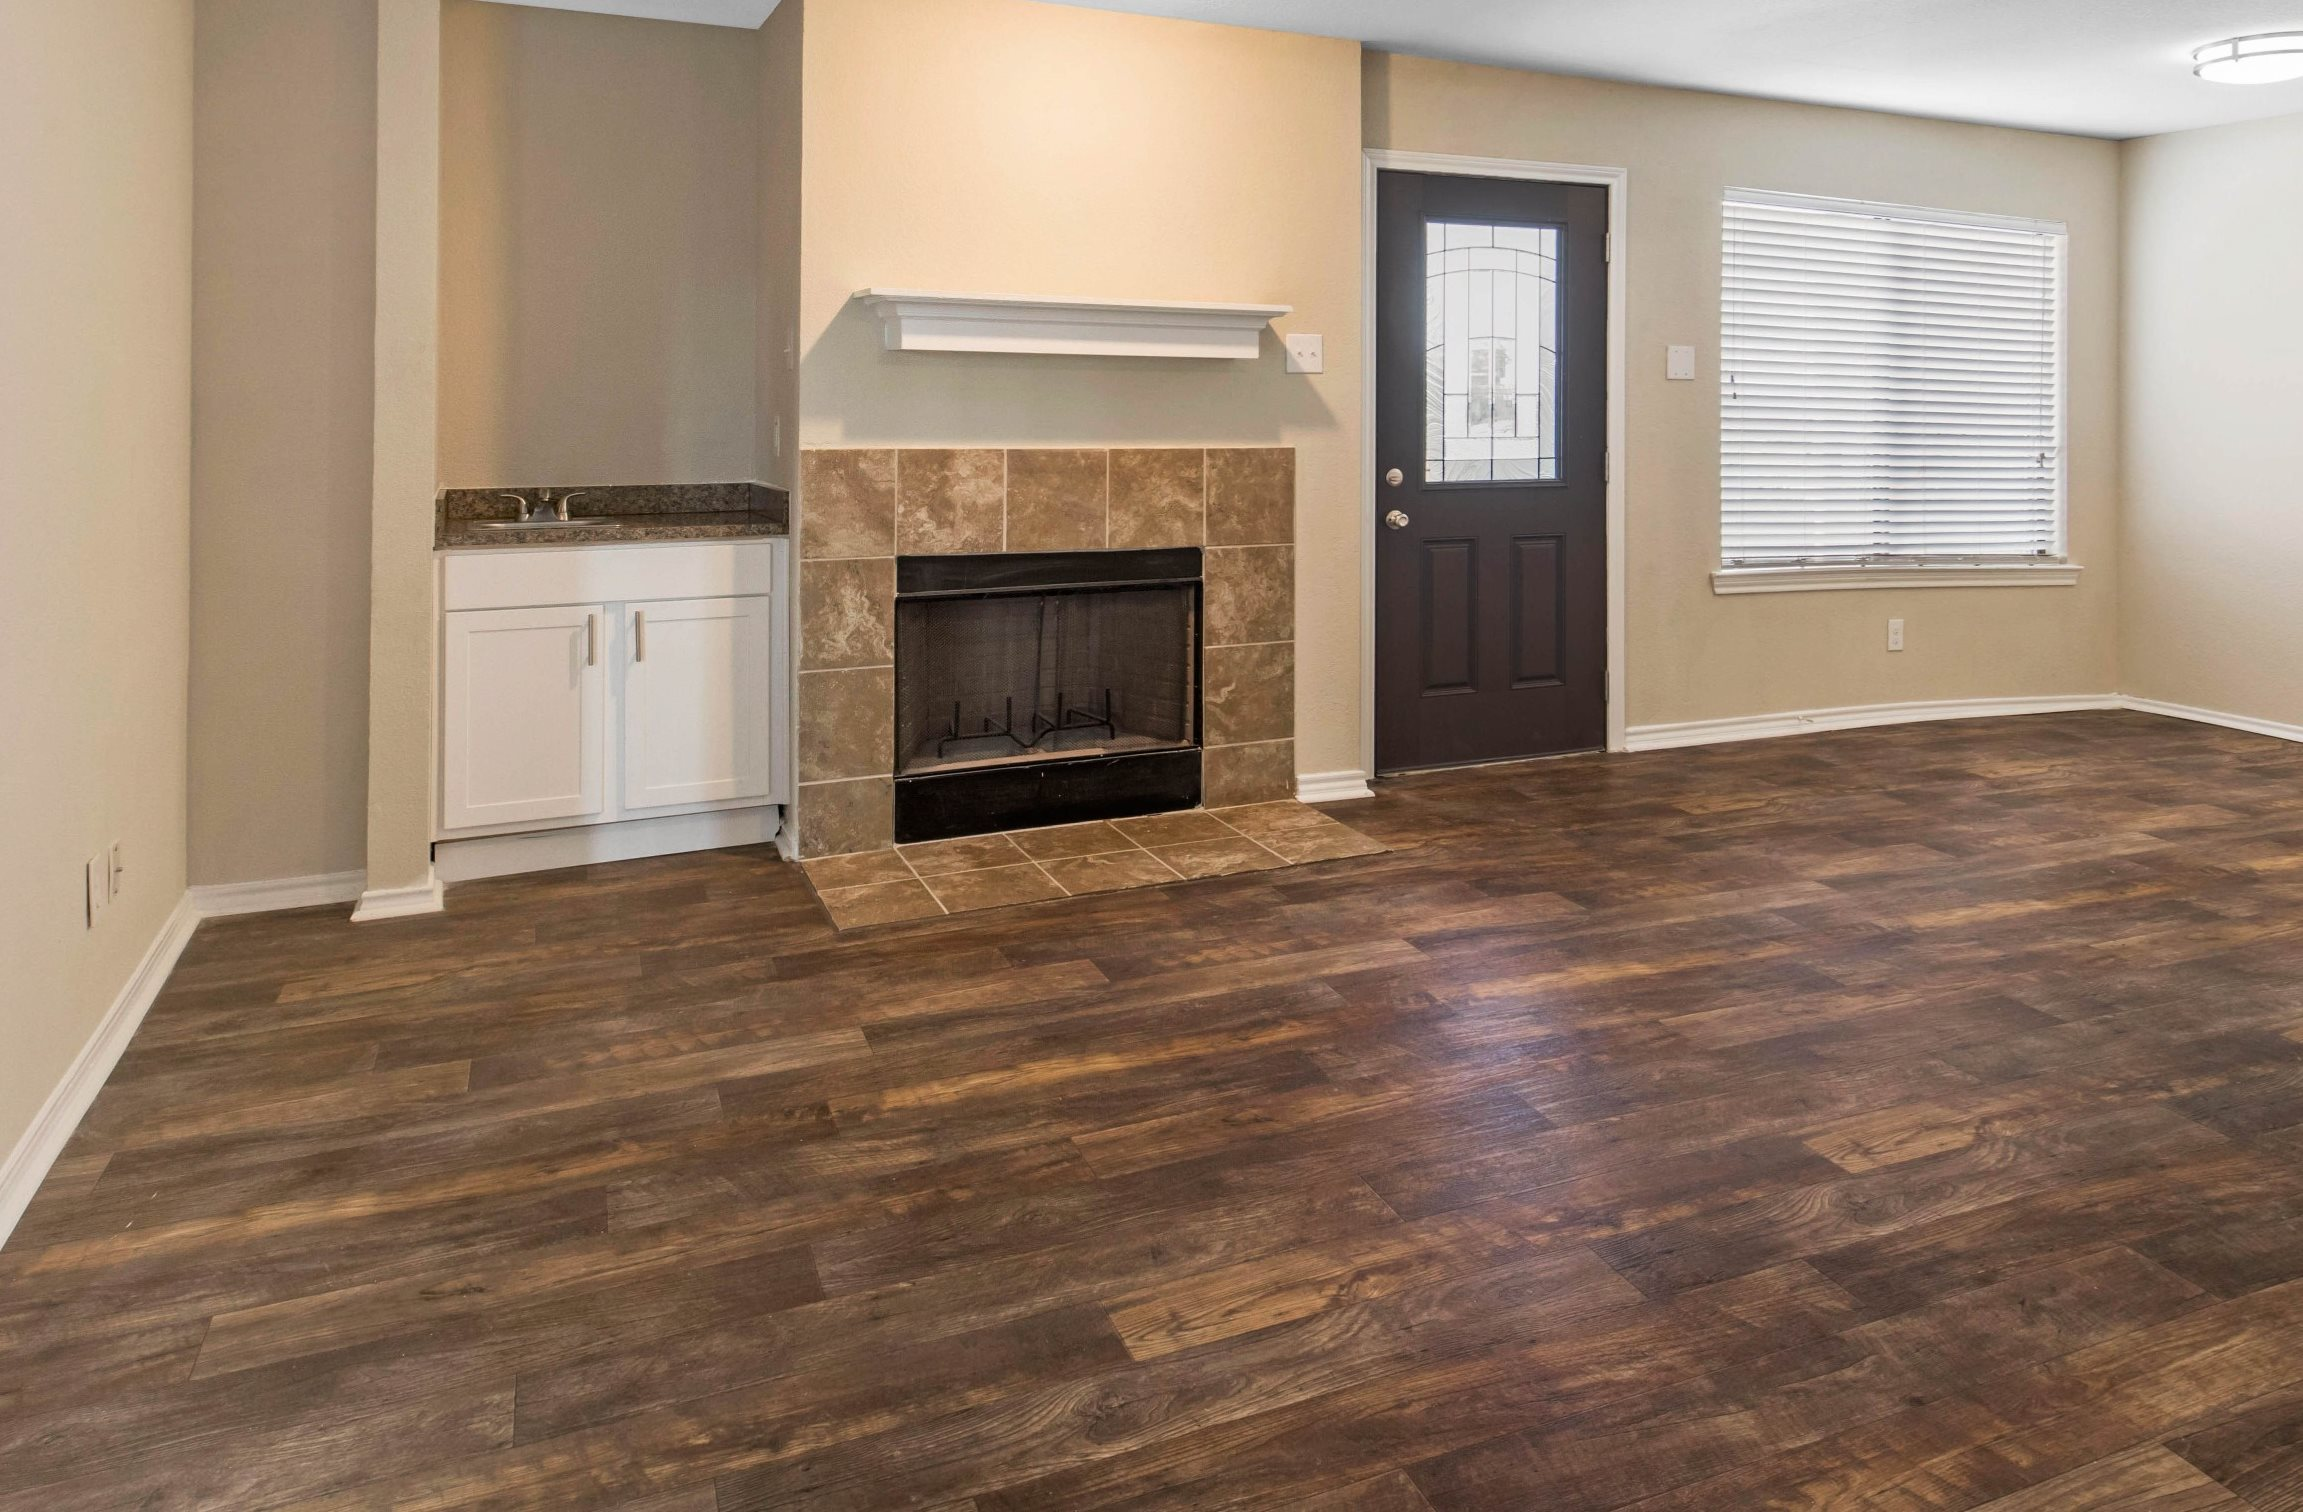 Lake Village West Apartments | Apartments in Garland, TX